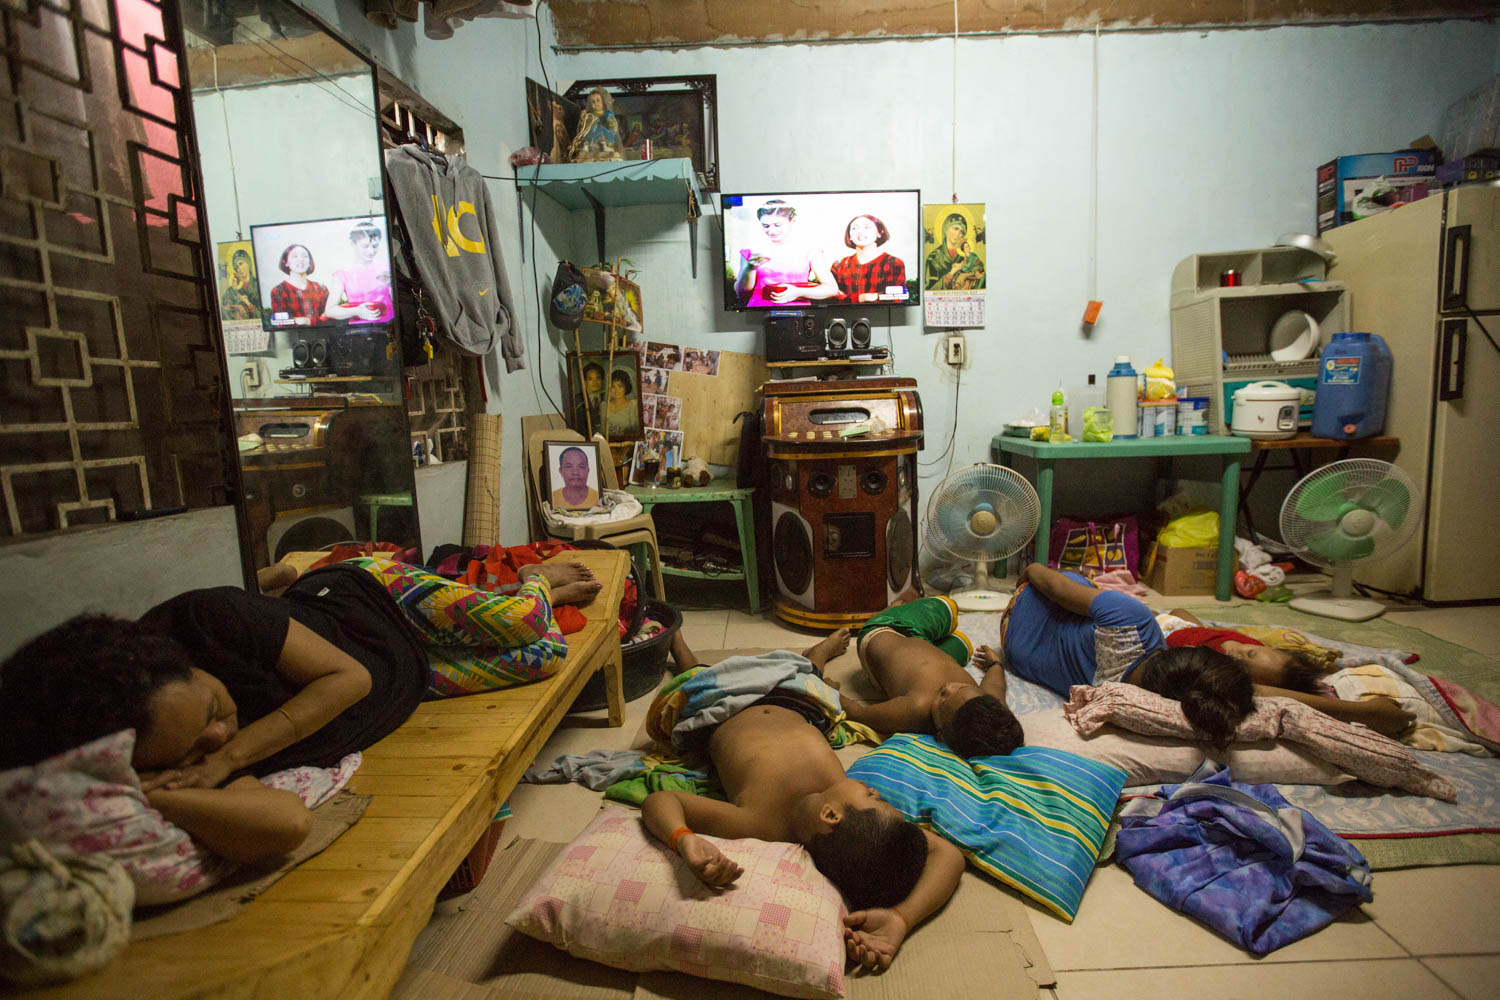 Baseco is an informal neighborhood of Manila located between the international port and the Pasig river. More than 50 000 people are living there in very precarious conditions. All the family got sleeping watching the TV. On a chair on the left of the screen is a picture of the father, who got shot in his shop getting stolen the cash. Manila, Philippines - 13/01/2016.